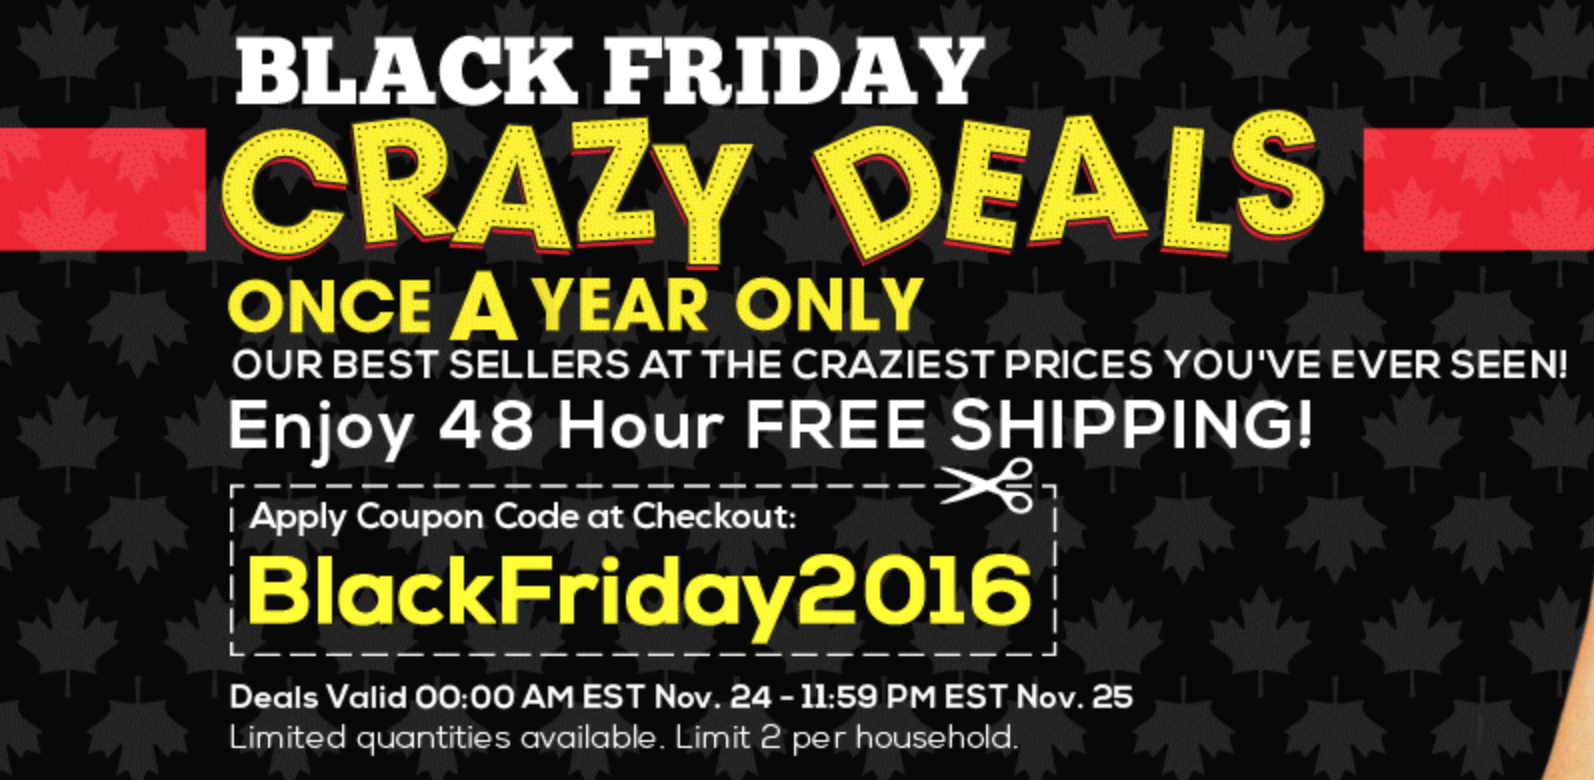 123InkCartridges.Ca & Prime Cables Canada Black Friday Crazy Sale: FREE Shipping on Everything  Save Big on Man... http://www.lavahotdeals.com/ca/cheap/123inkcartridges-prime-cables-canada-black-friday-crazy-sale/143248?utm_source=pinterest&utm_medium=rss&utm_campaign=at_lavahotdeals